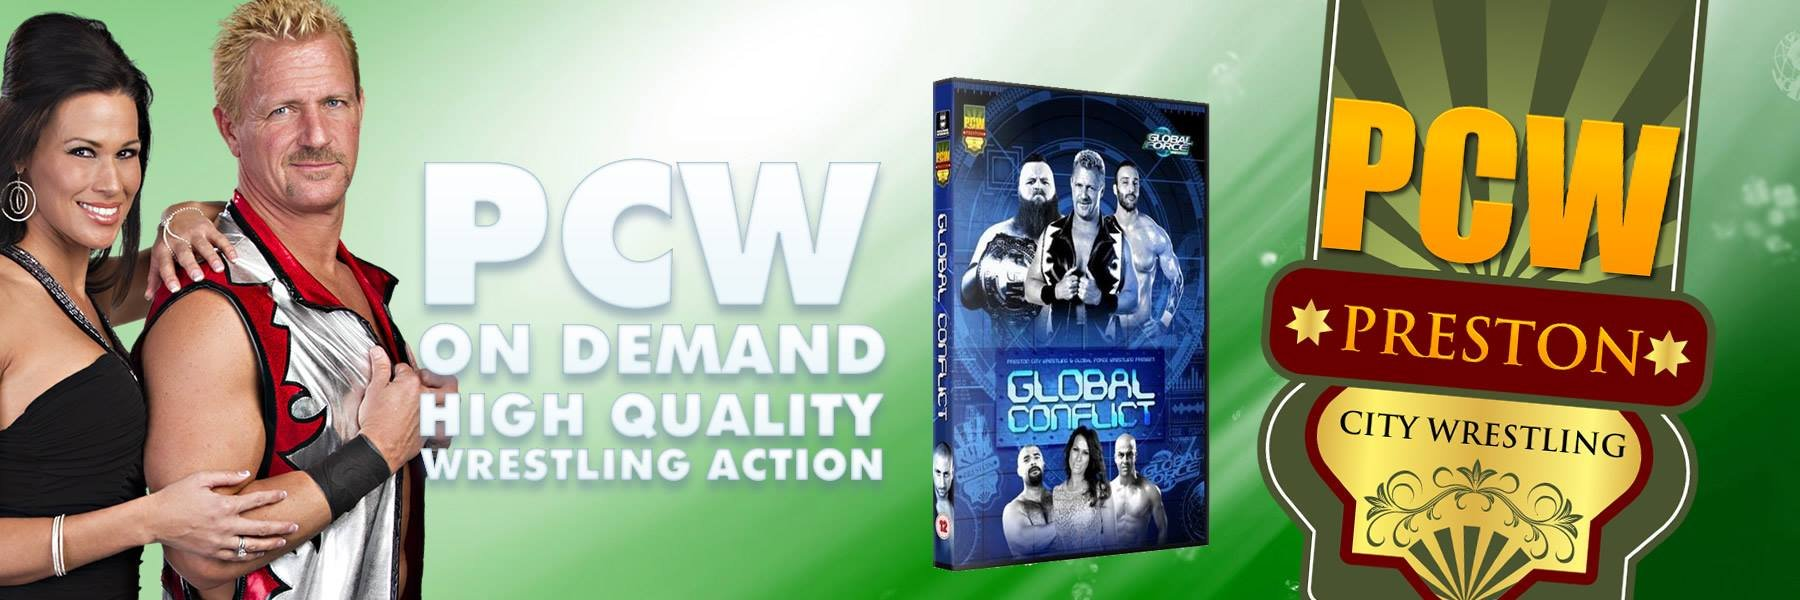 Global Force Wrestling vs PCW! Online now!